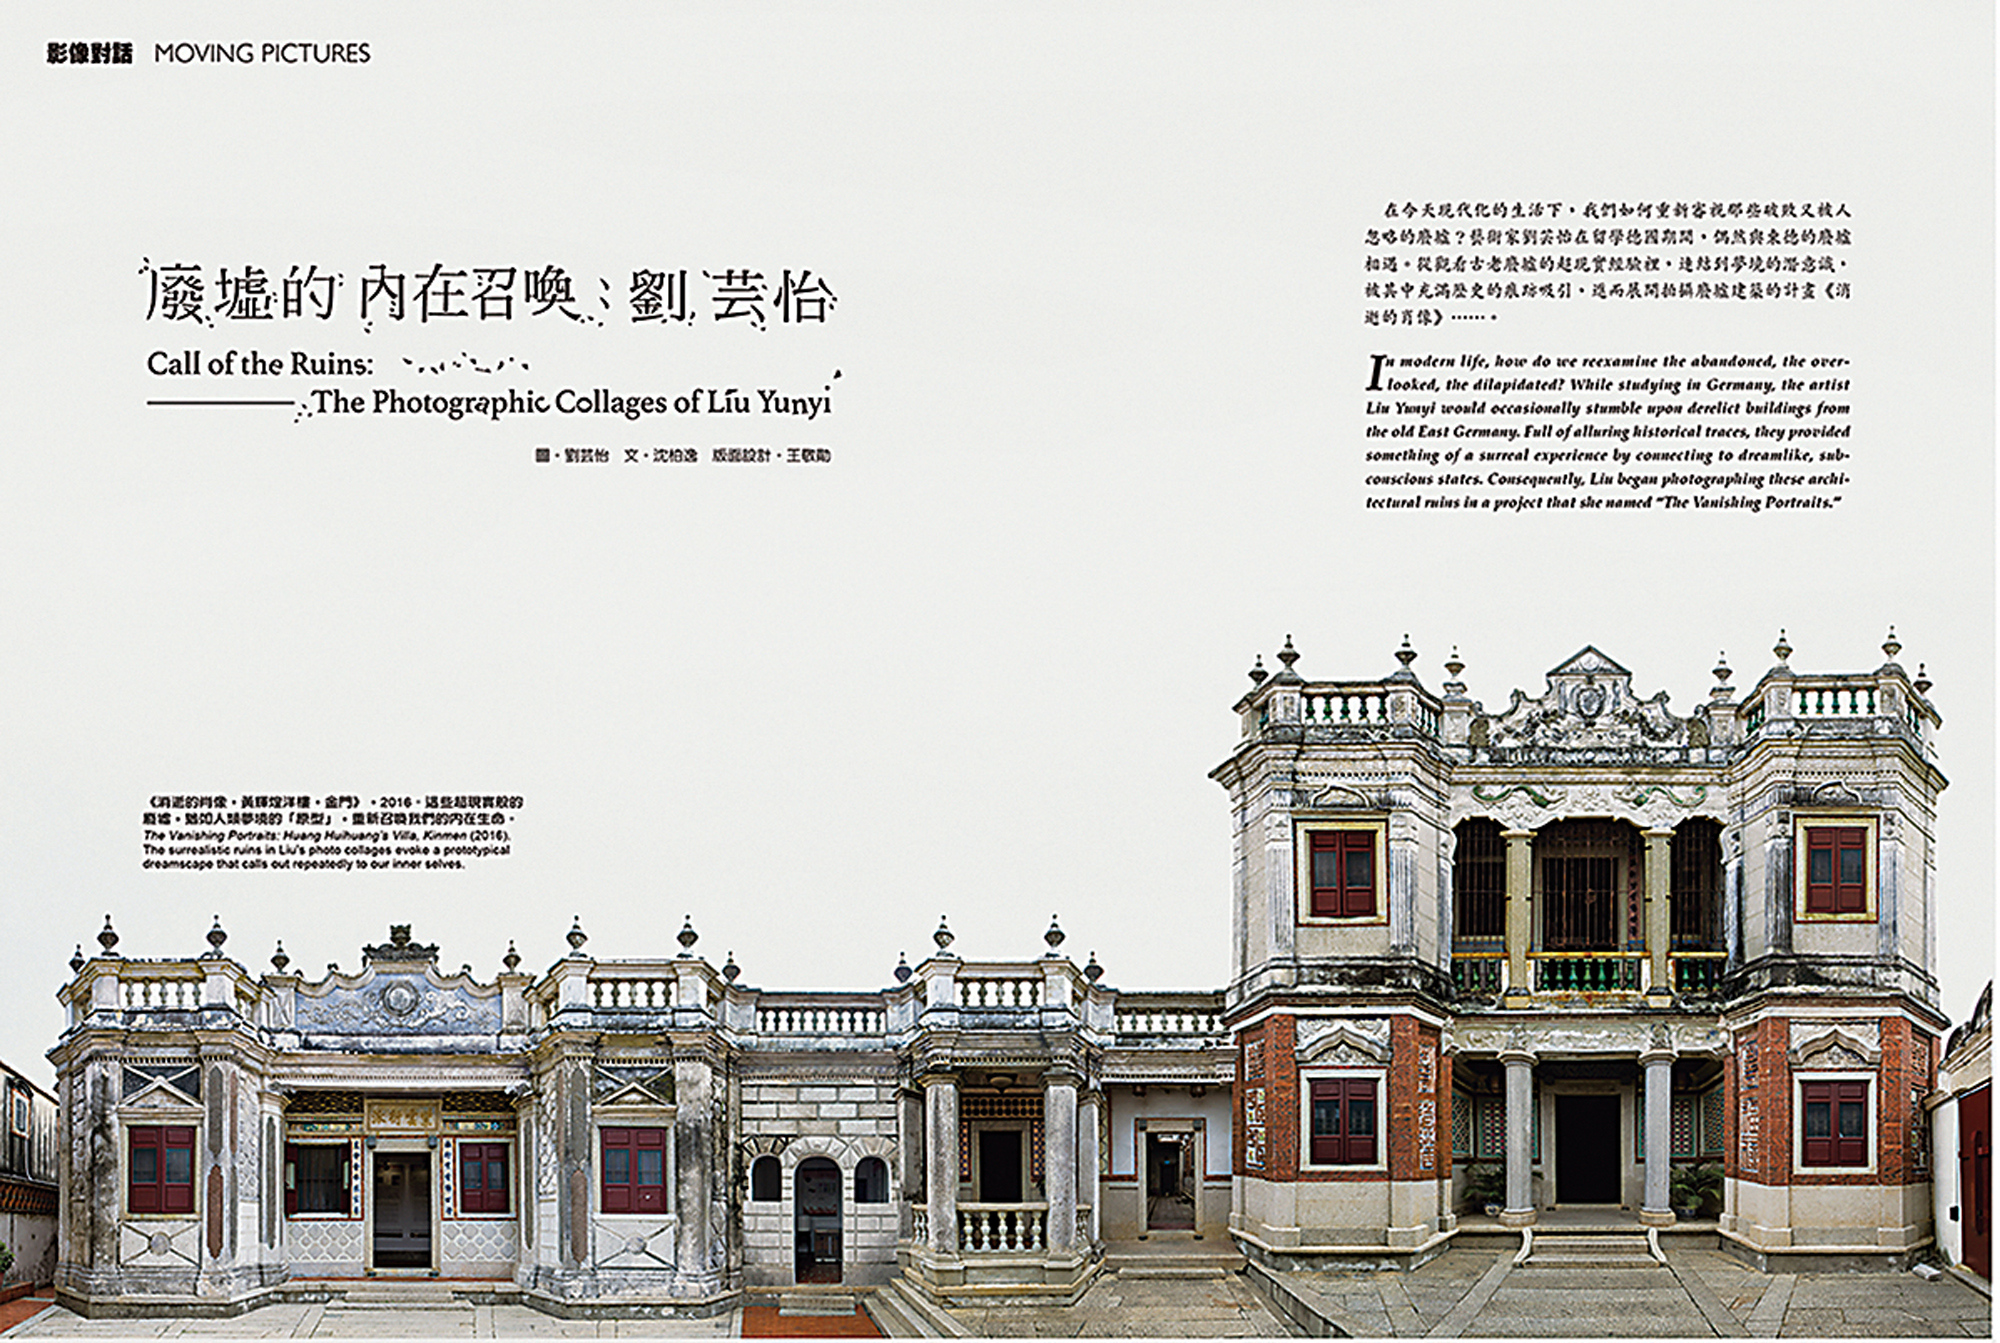 Taiwan Panorama continues to publish the work of many outstanding Taiwanese photographers.